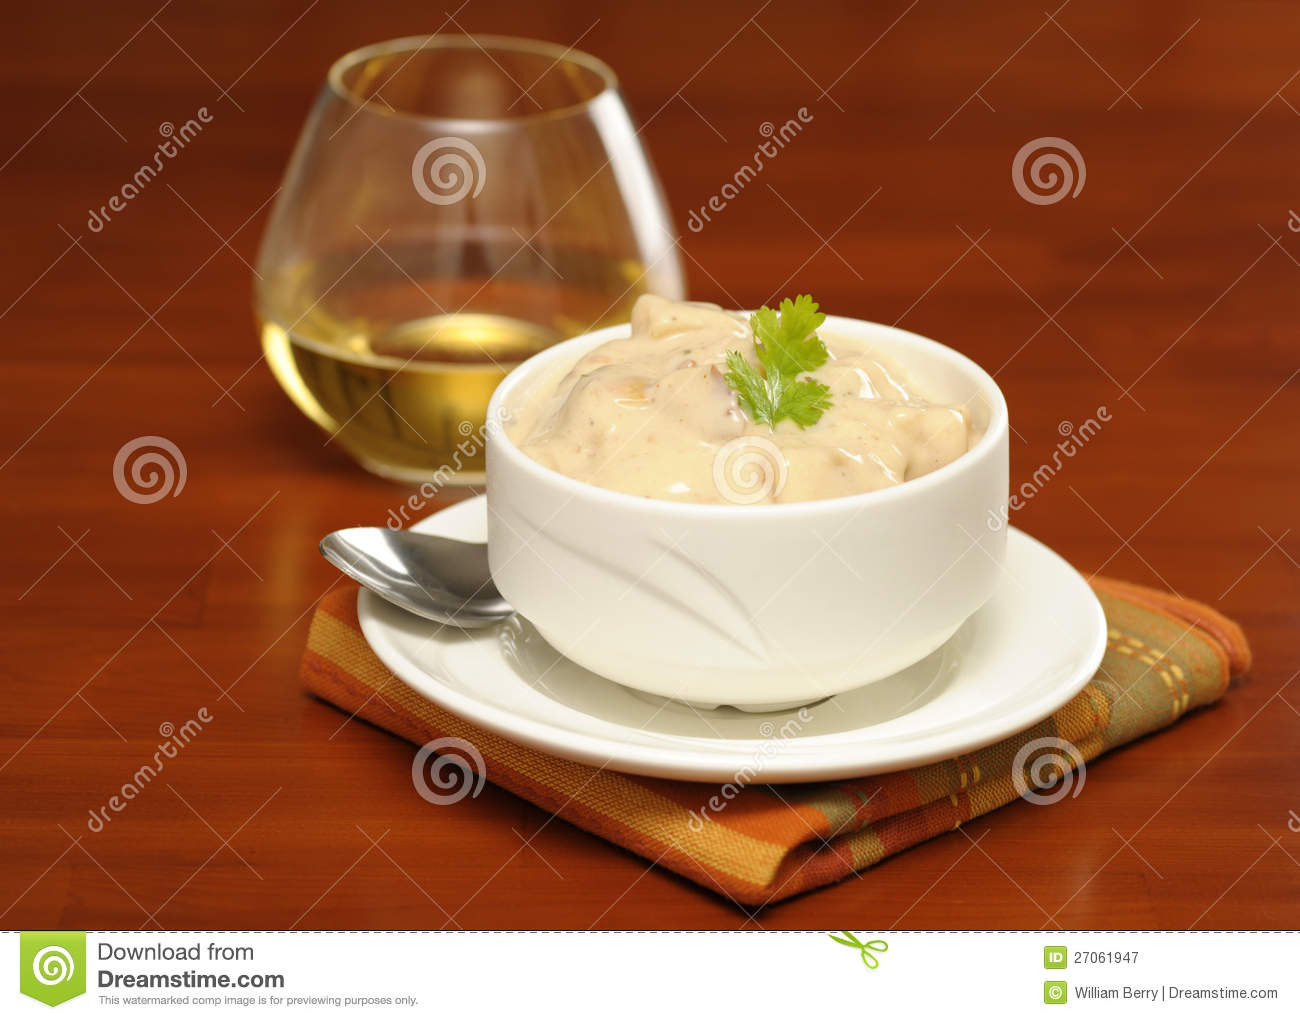 Clam Chowder Royalty Free Stock Photography - Image: 27061947